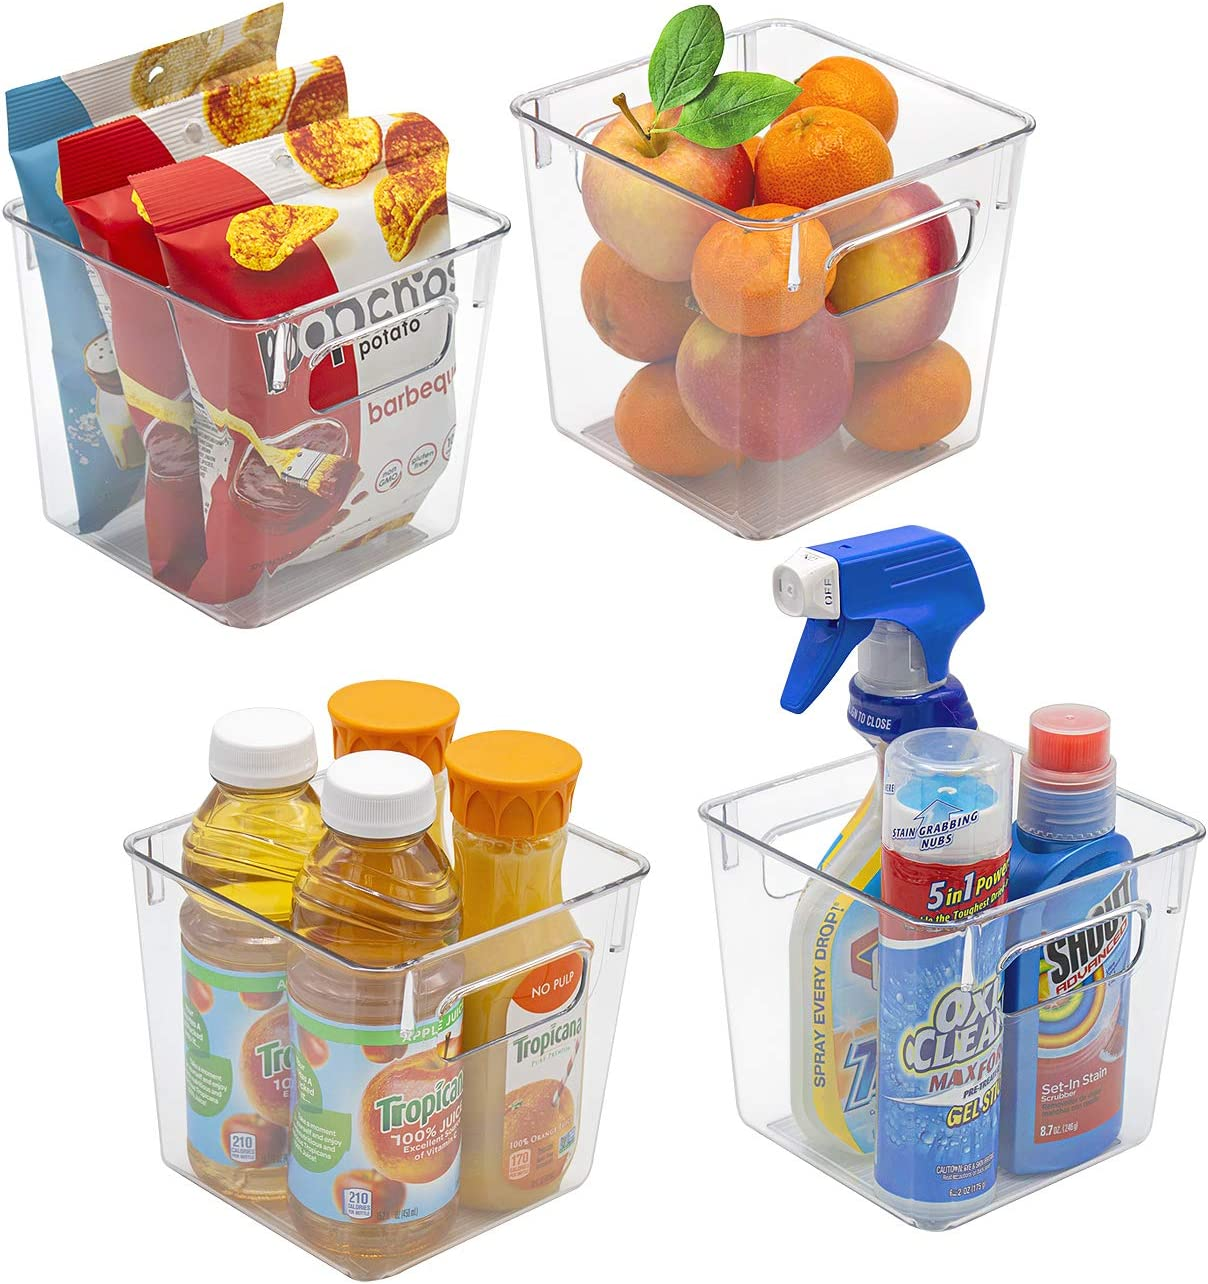 Sorbus Plastic Storage Bins Clear Pantry Organizer Box Bin Containers for Organizing Kitchen Fridge, Food, Snack Pantry Cabinet, Fruit, Vegetables, Bathroom Supplies, (Square, 4-Pack)